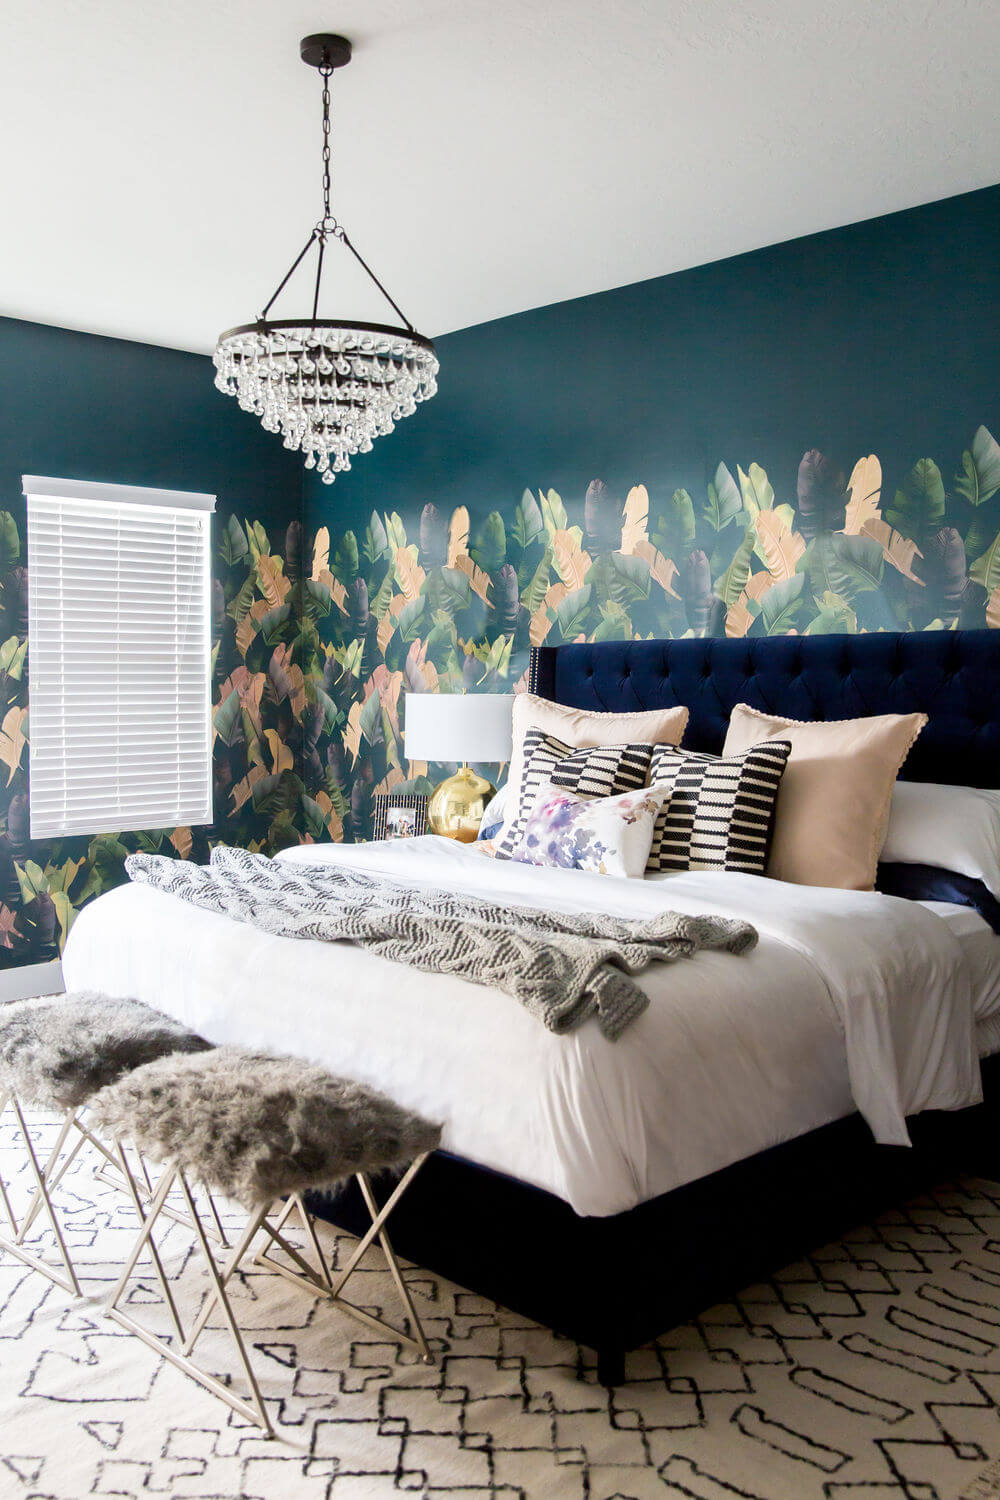 22 Best Bedroom Accent Wall Design Ideas To Update Your Space In 2020